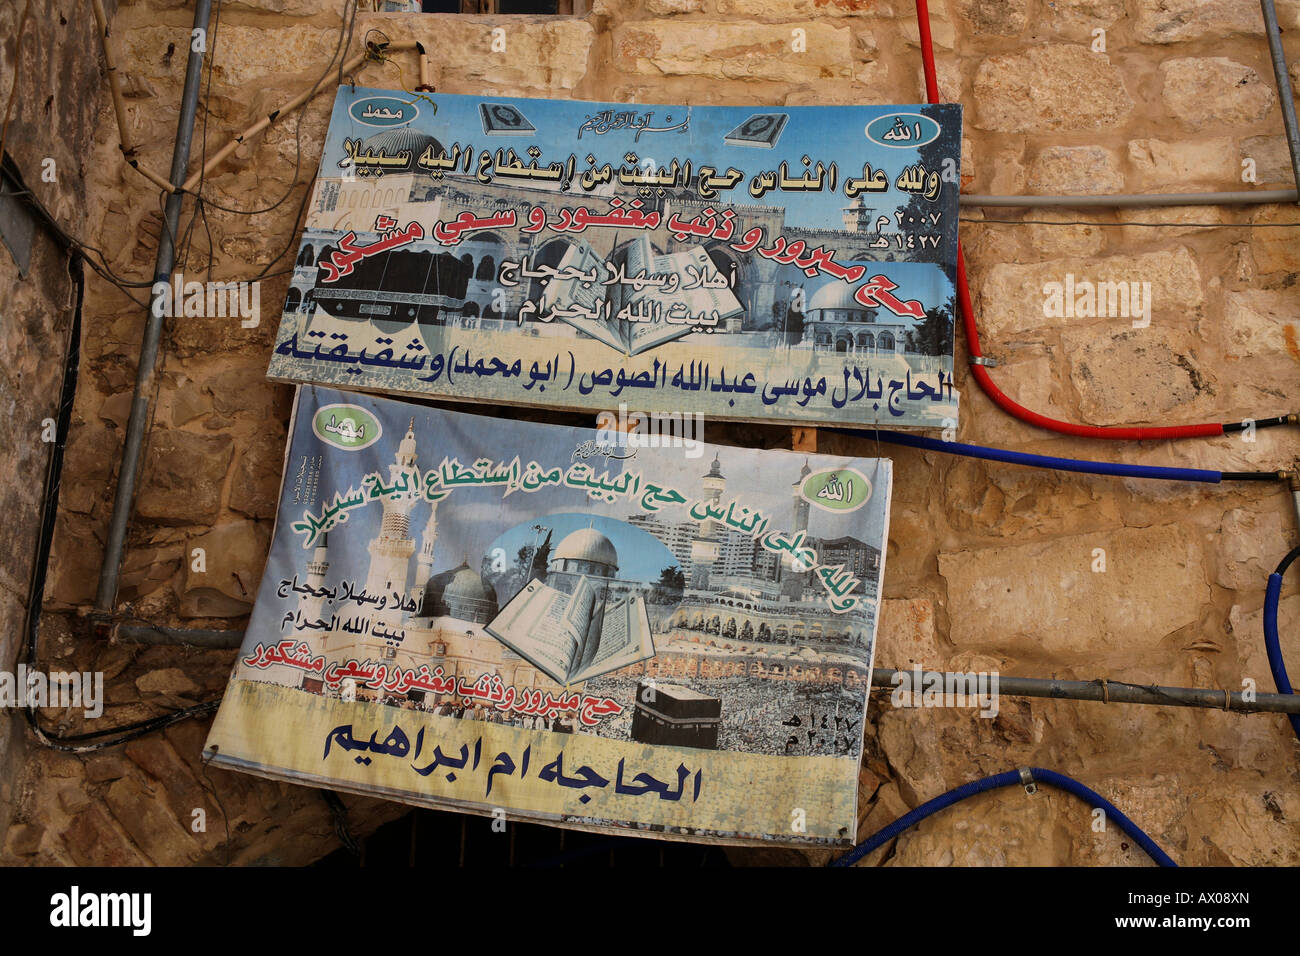 Posters of muslim holy places hung in a market in the old city section of Jerusalem - Stock Image